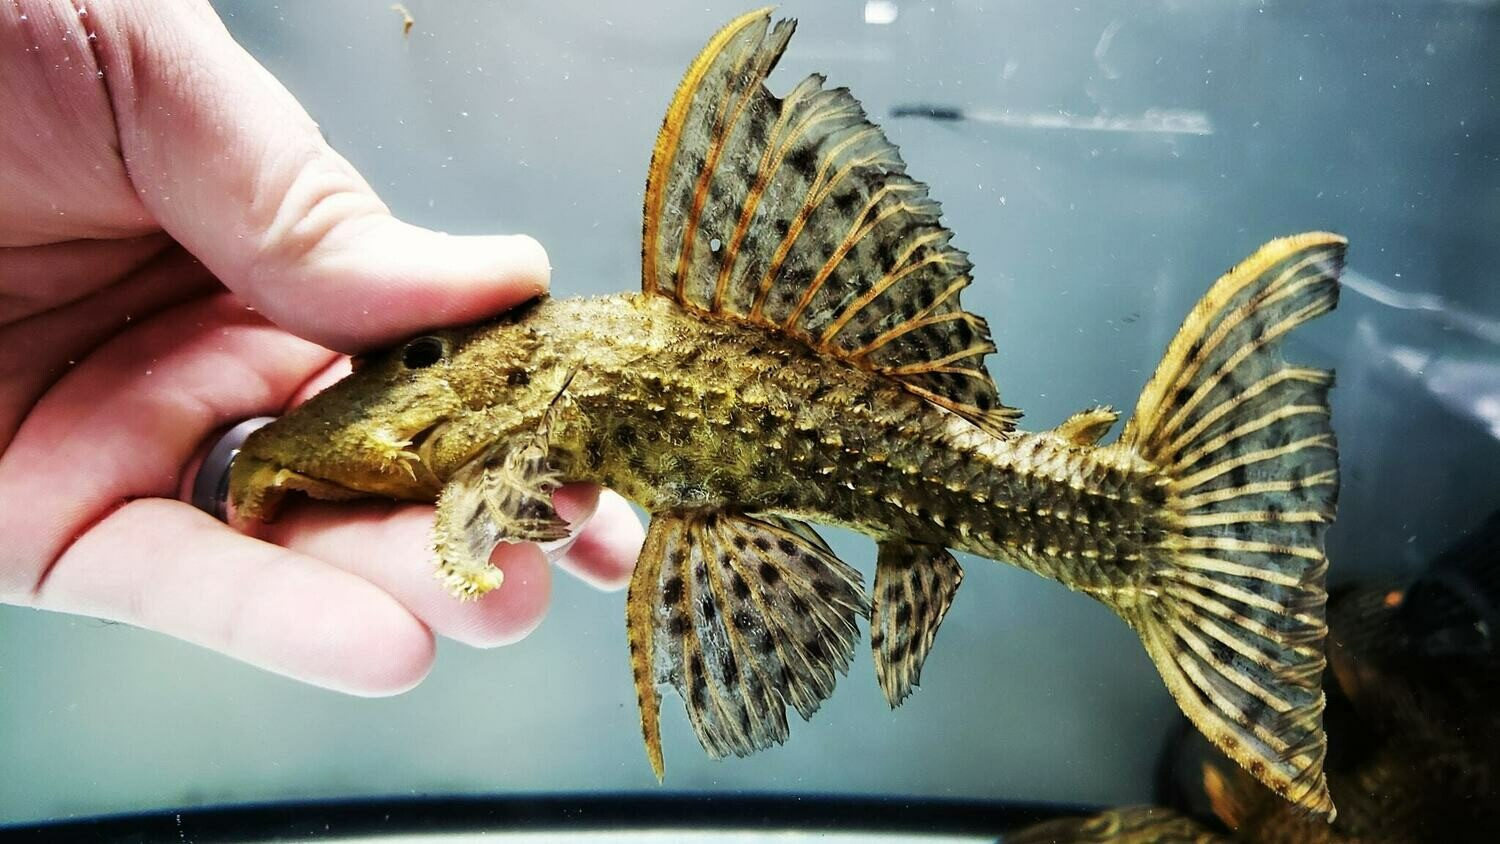 Pseudacanthicus spinosus - L096/L160 (Spiny Monster/Coffee and Cream Cactus Pleco)